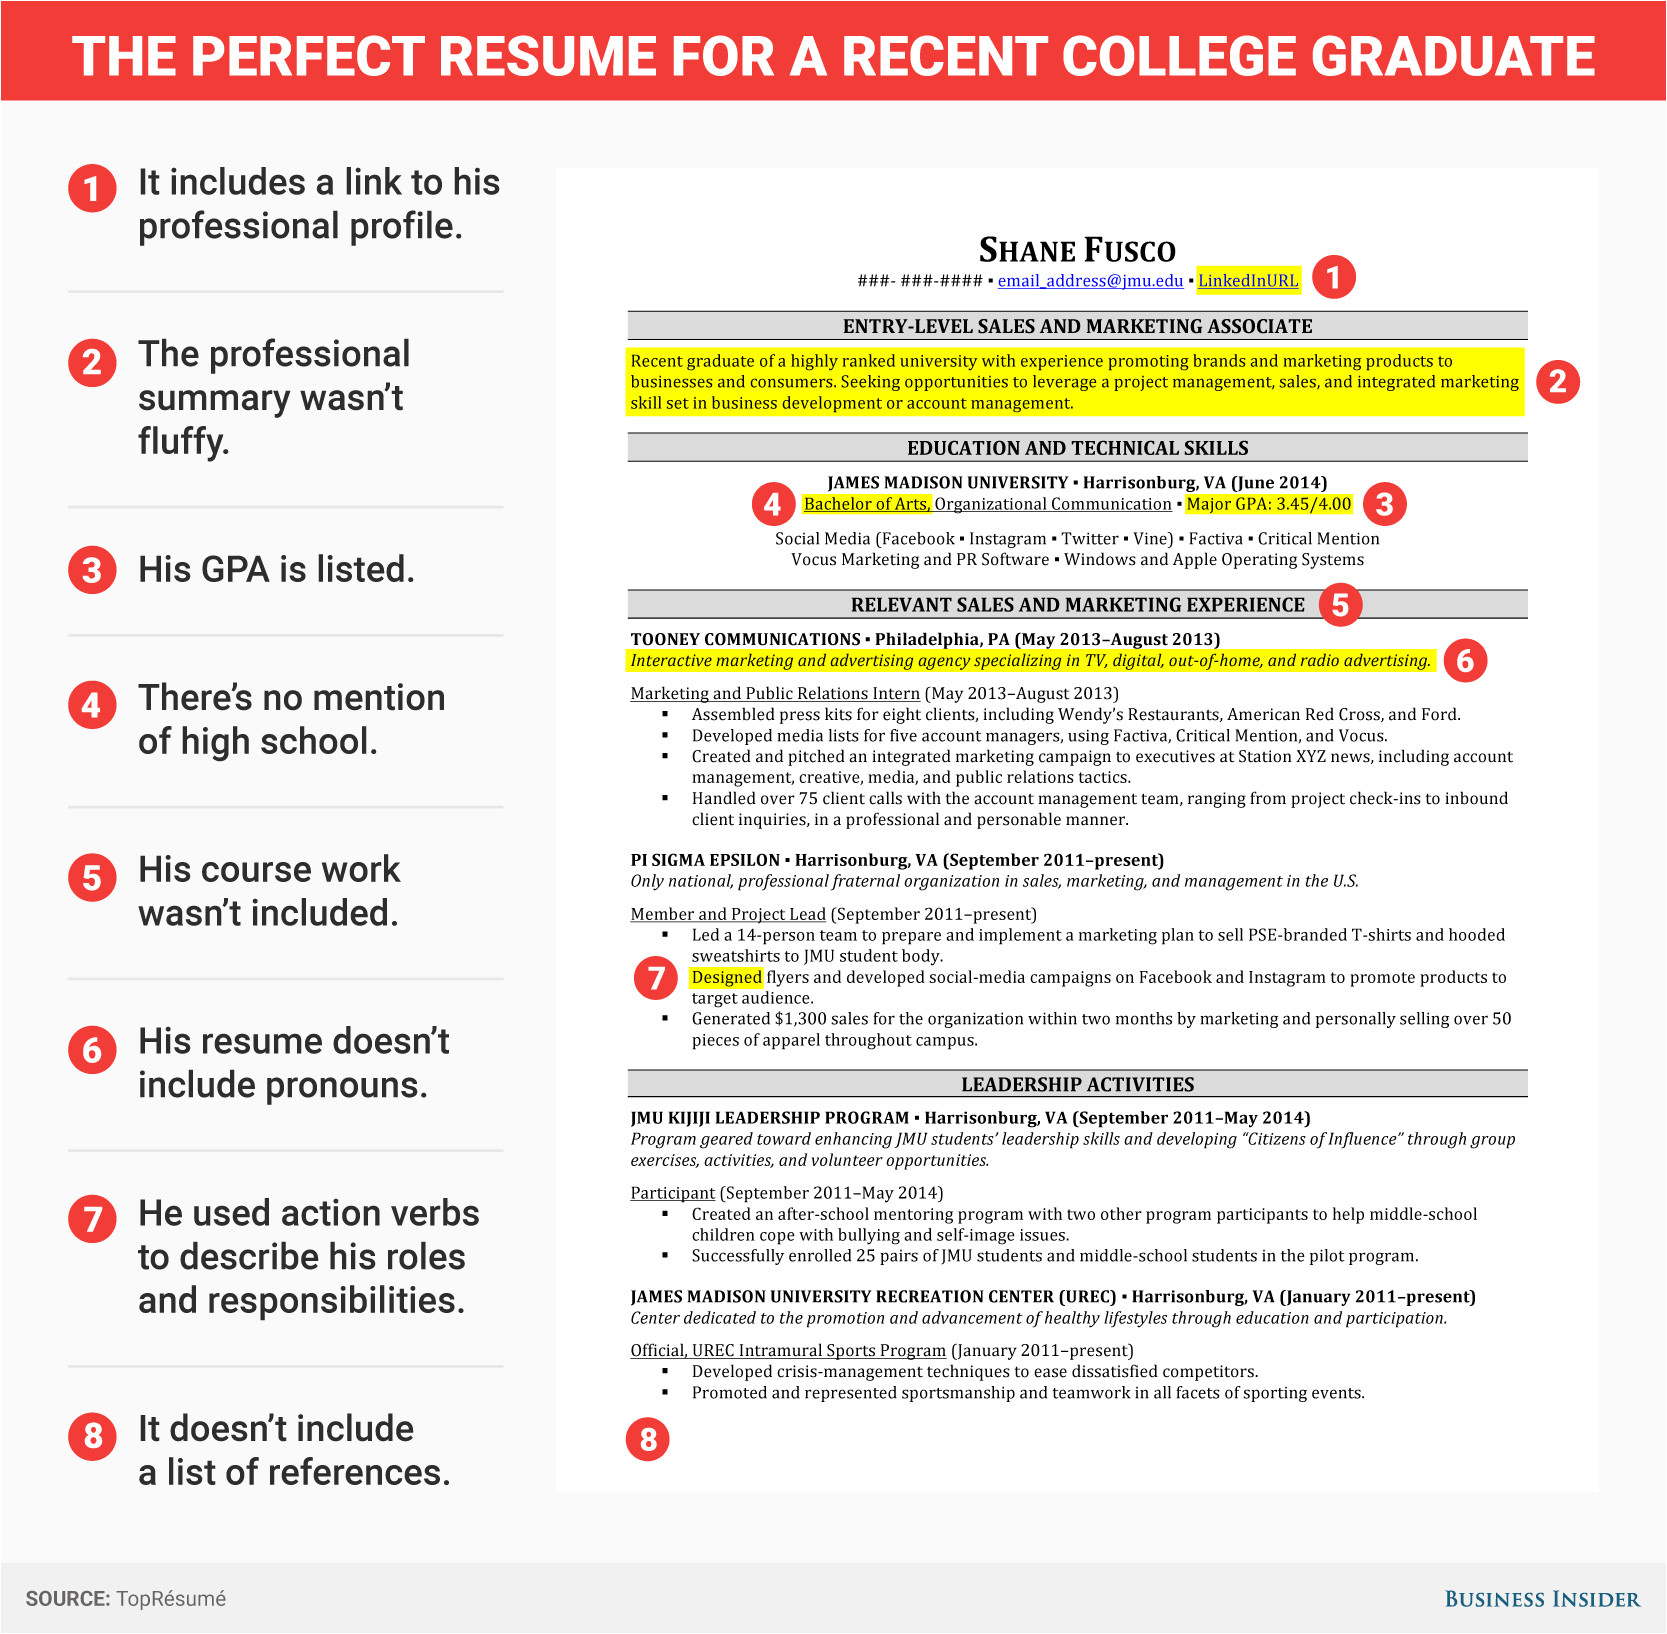 excellent resume for a recent graduate 2016 9